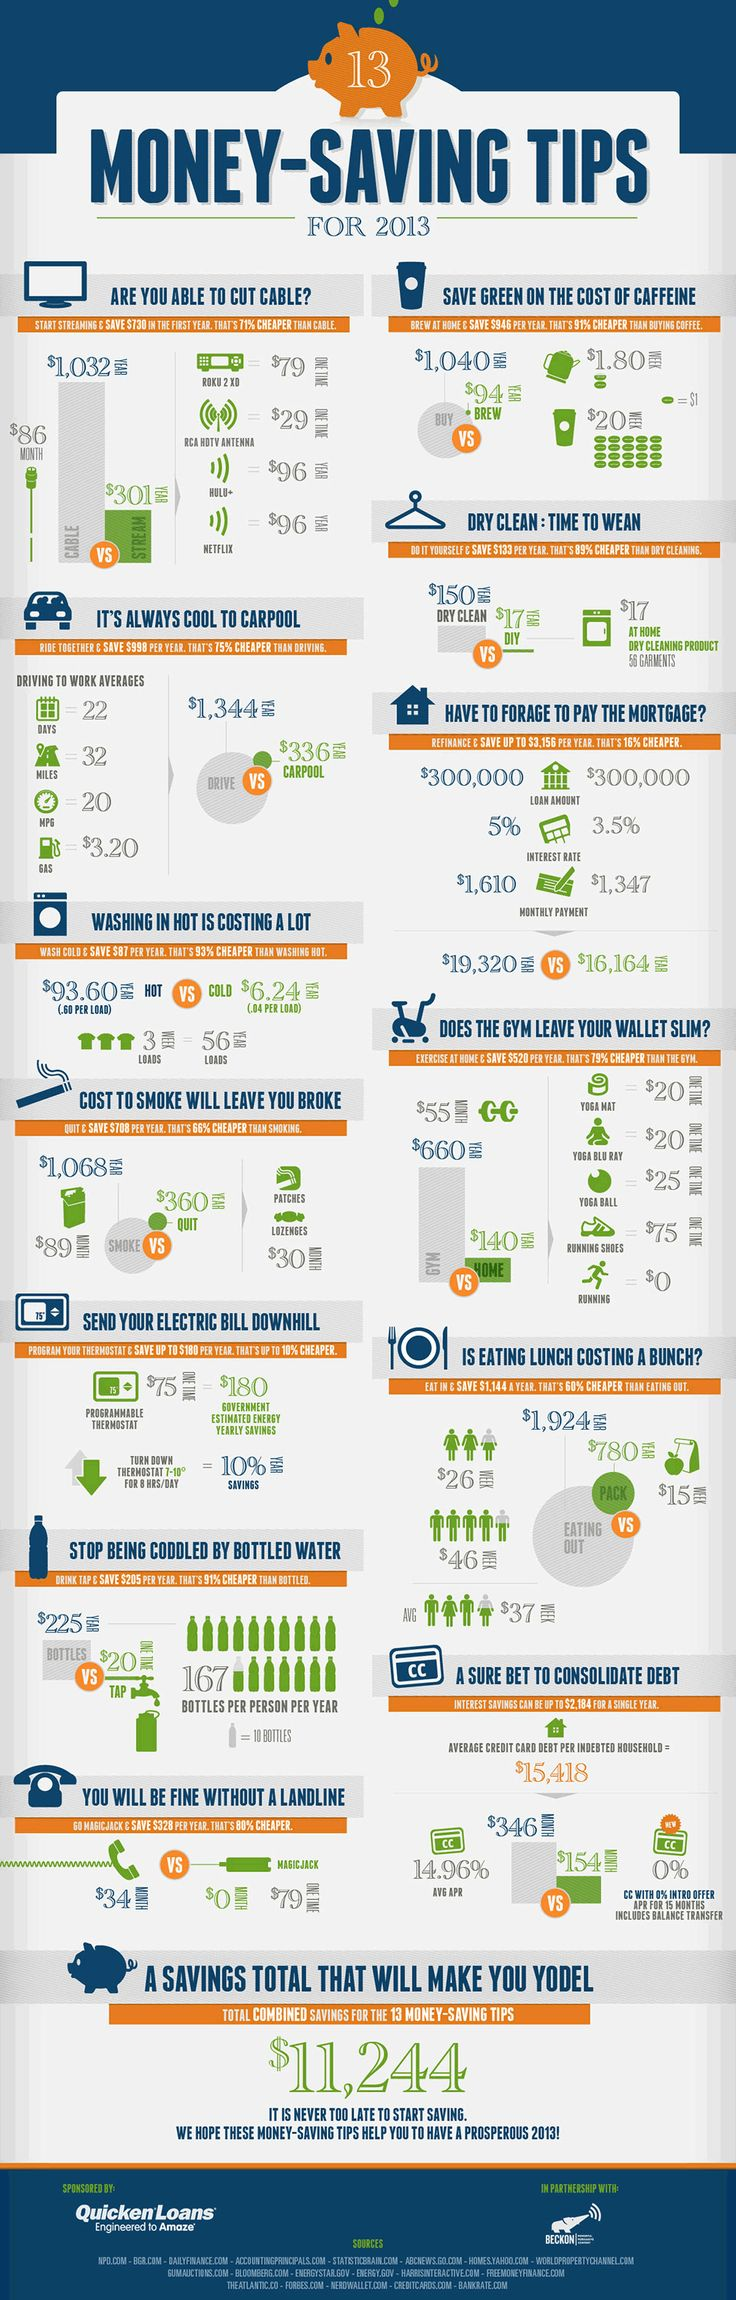 Money Saving Tips Infographic- intriguing ways to save money in practical ways